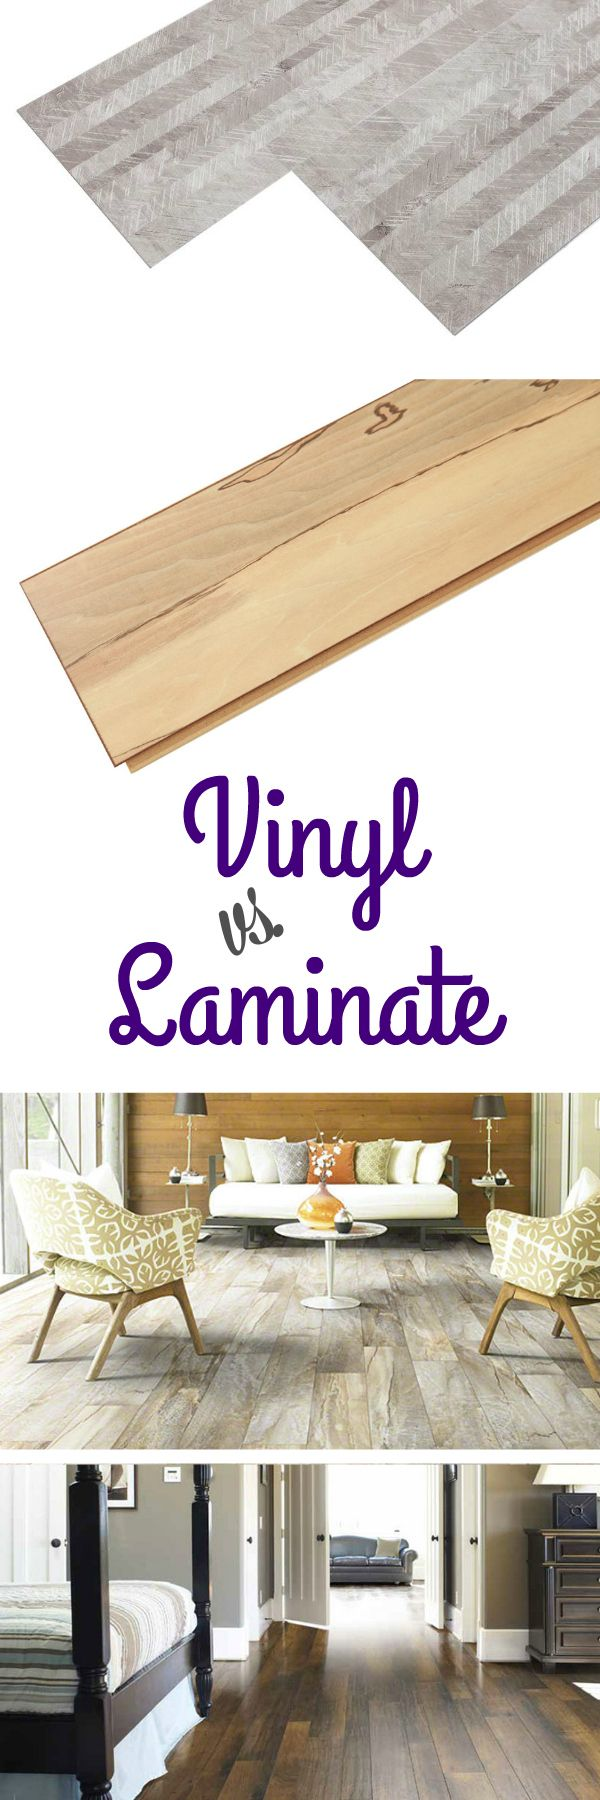 Best 25 laminate flooring cost ideas only on pinterest laminate laminate vs vinyl flooring jameslax Image collections